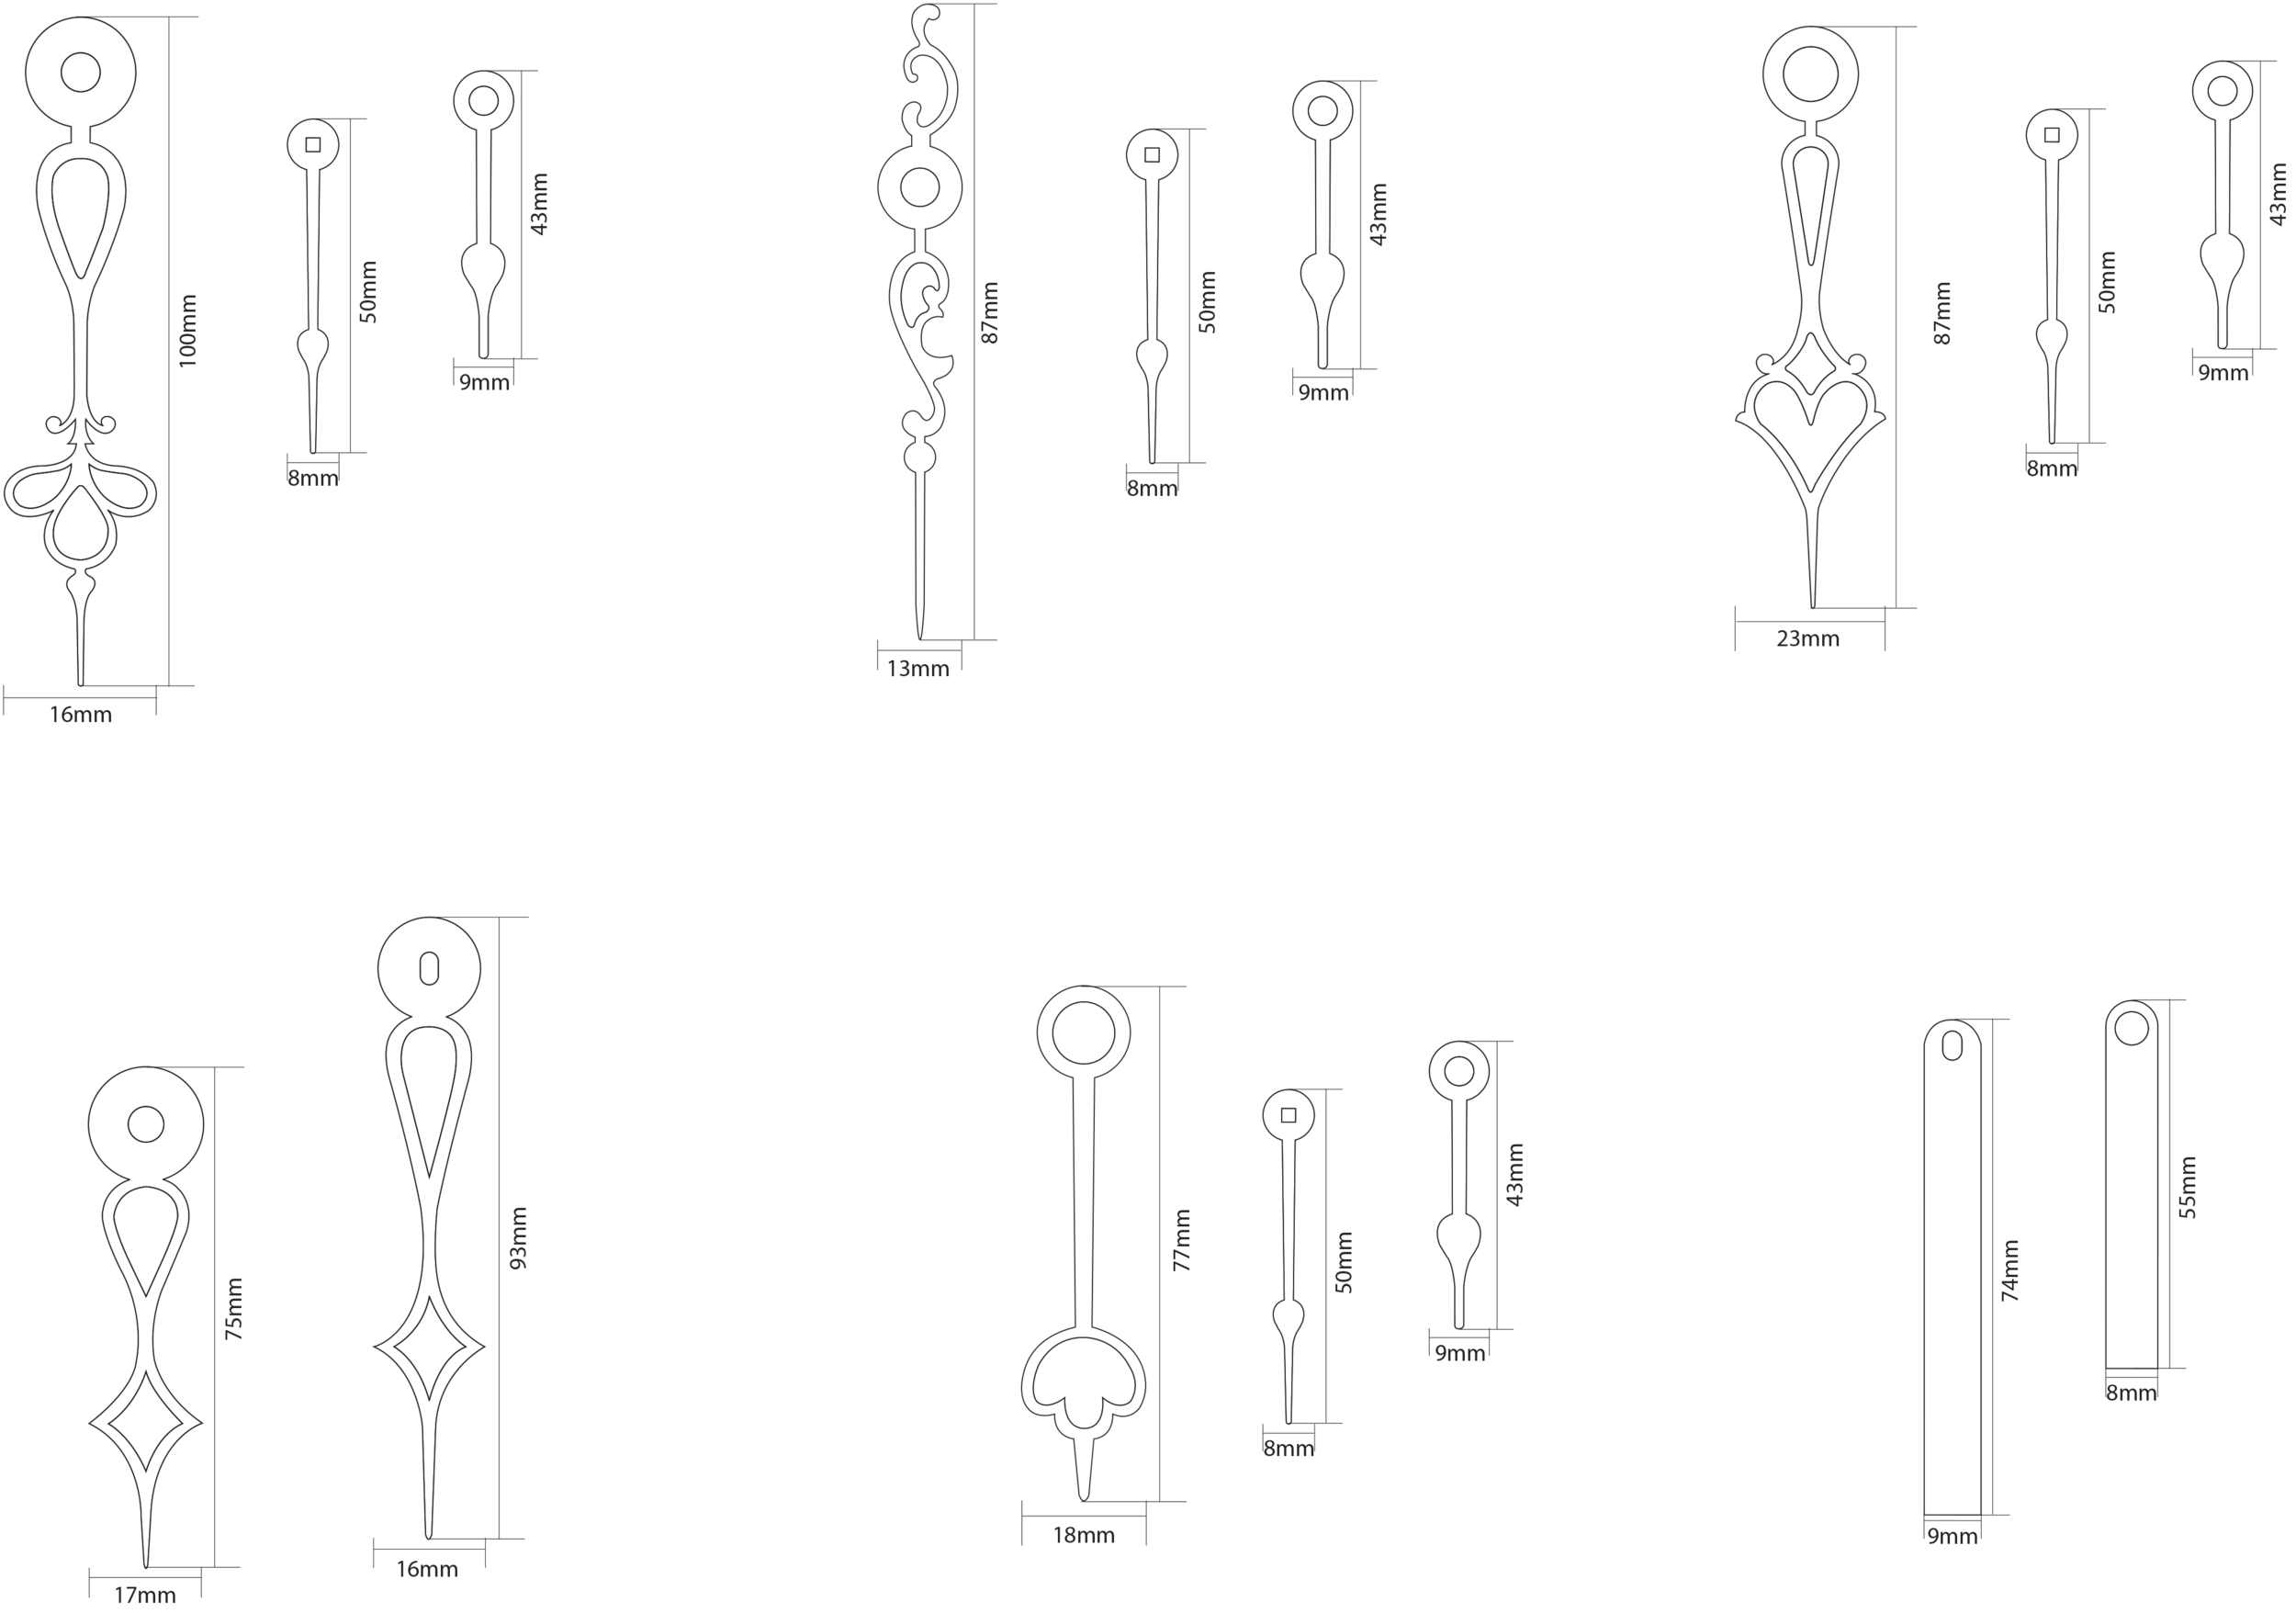 final designs_dimensioned - ELB.png